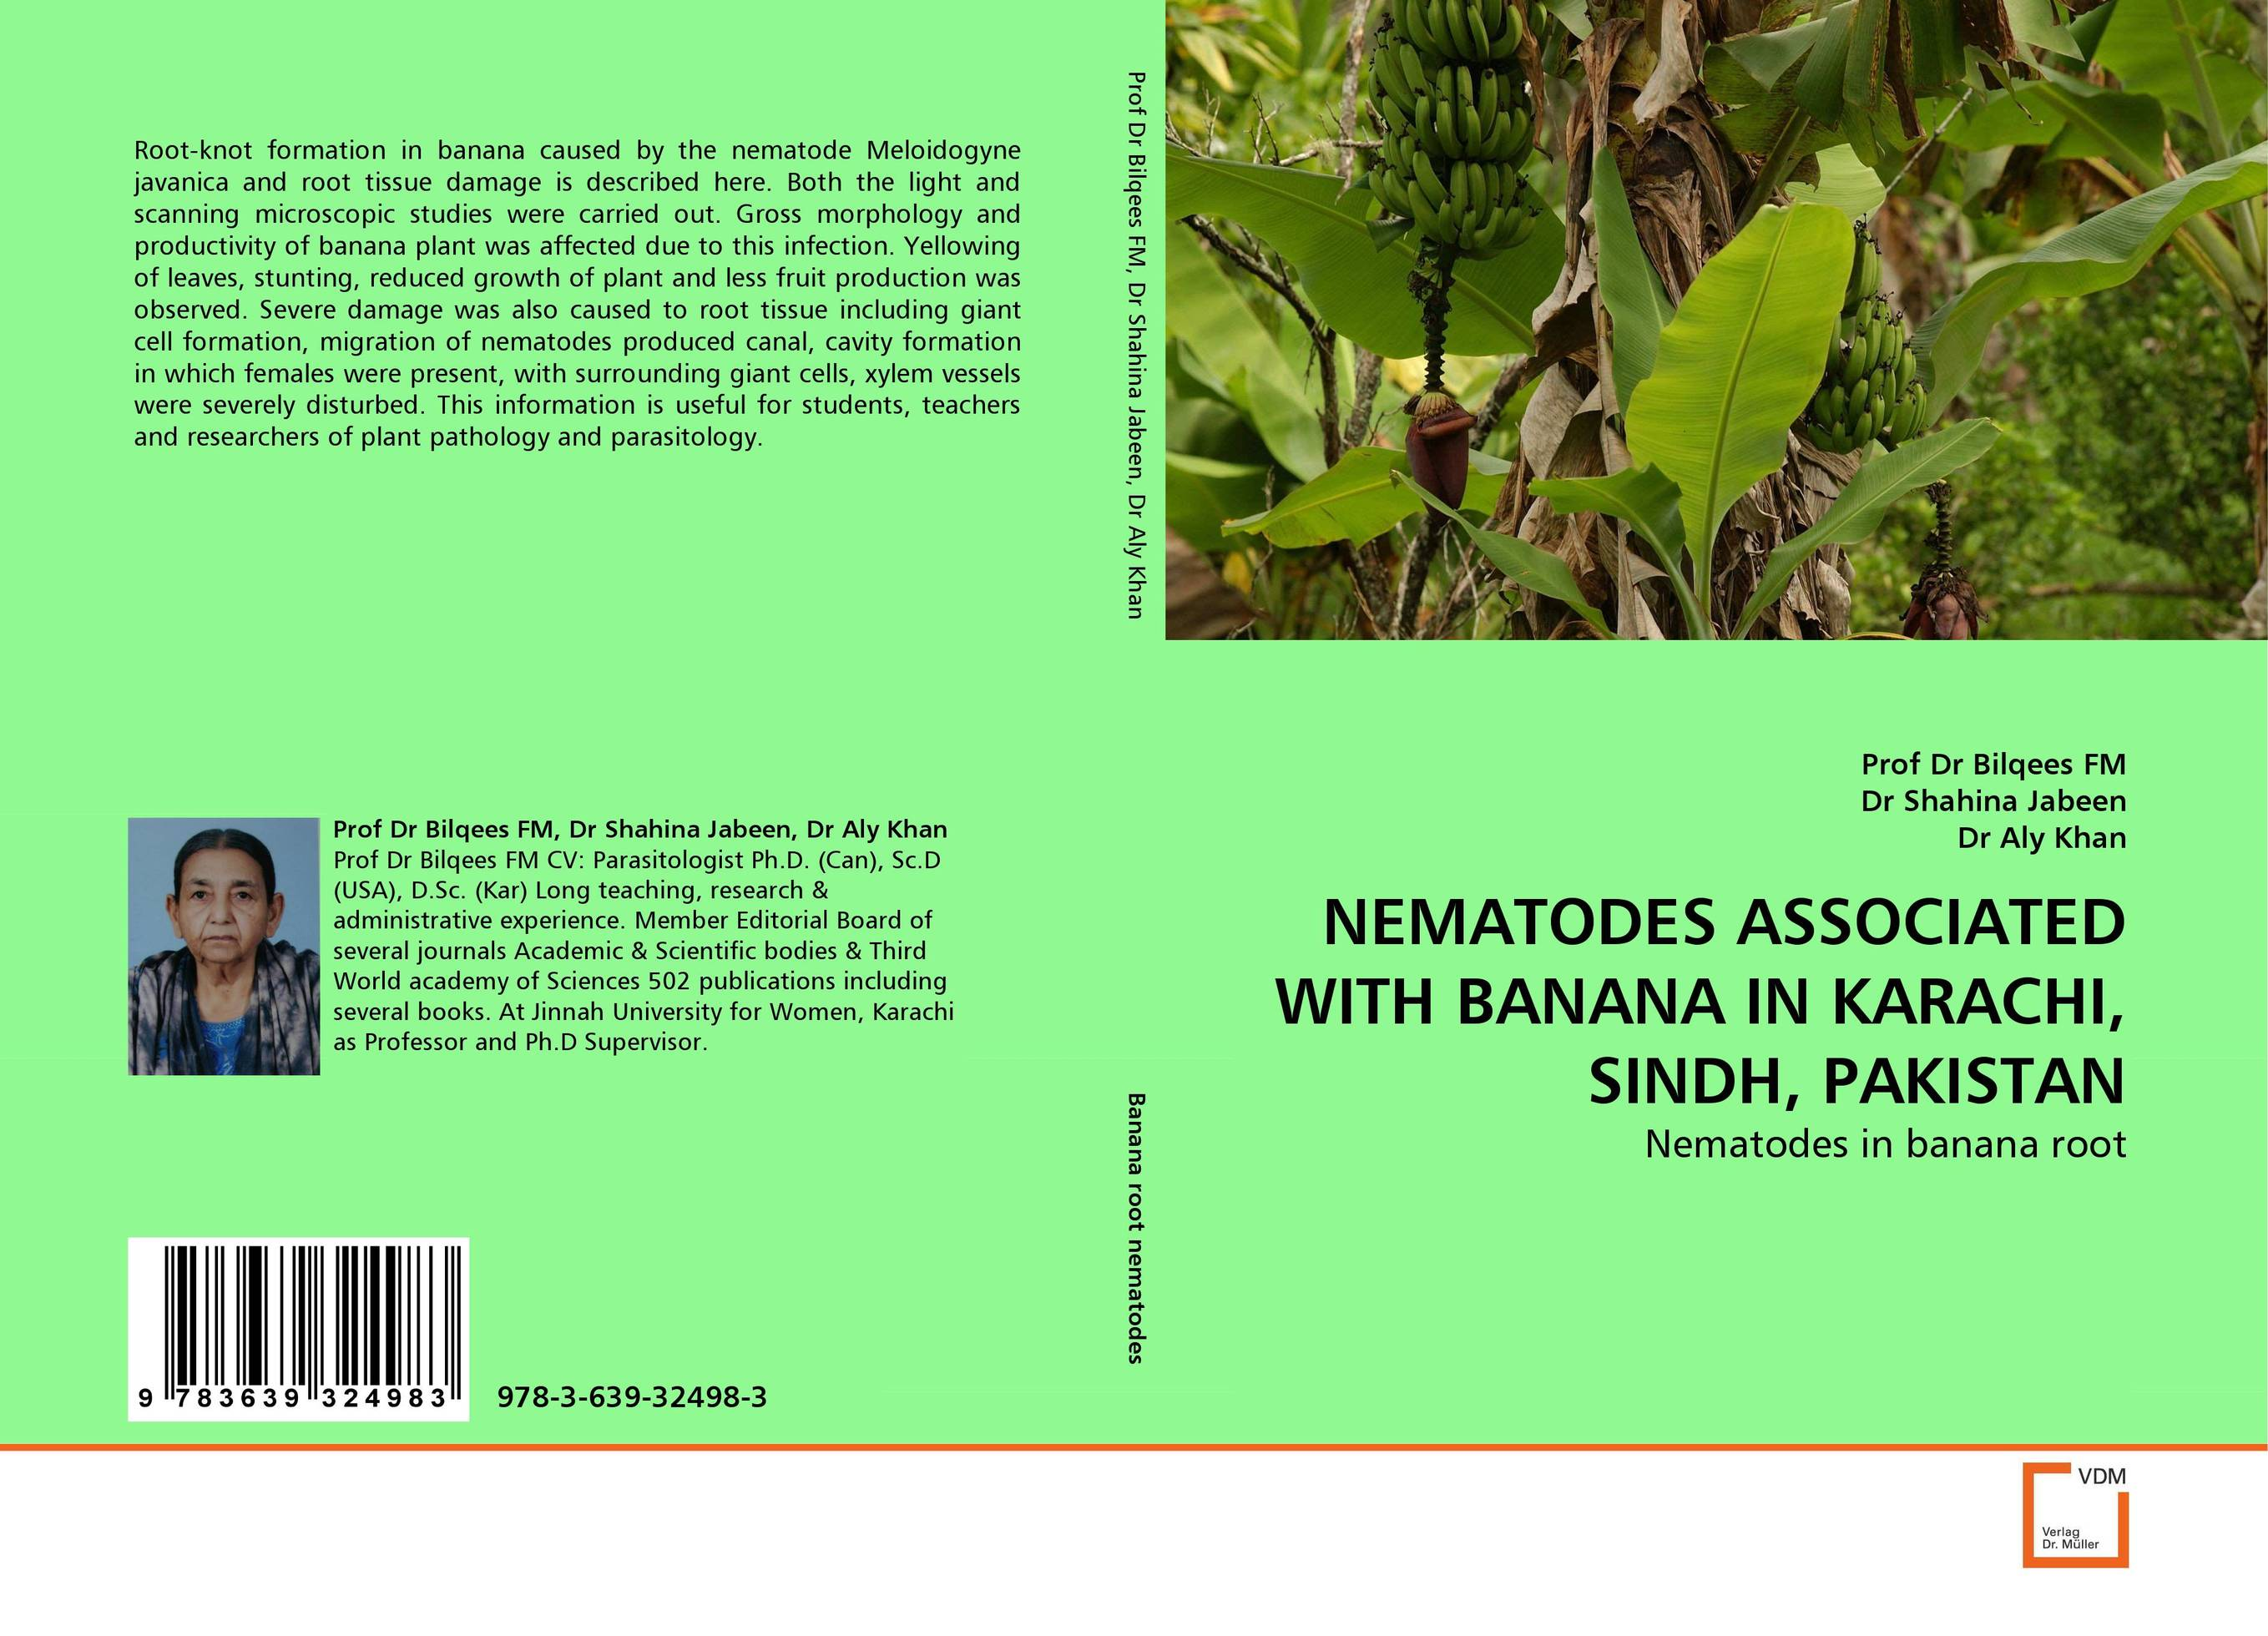 NEMATODES ASSOCIATED WITH BANANA IN KARACHI, SINDH, PAKISTAN the teeth with root canal students to practice root canal preparation and filling actually